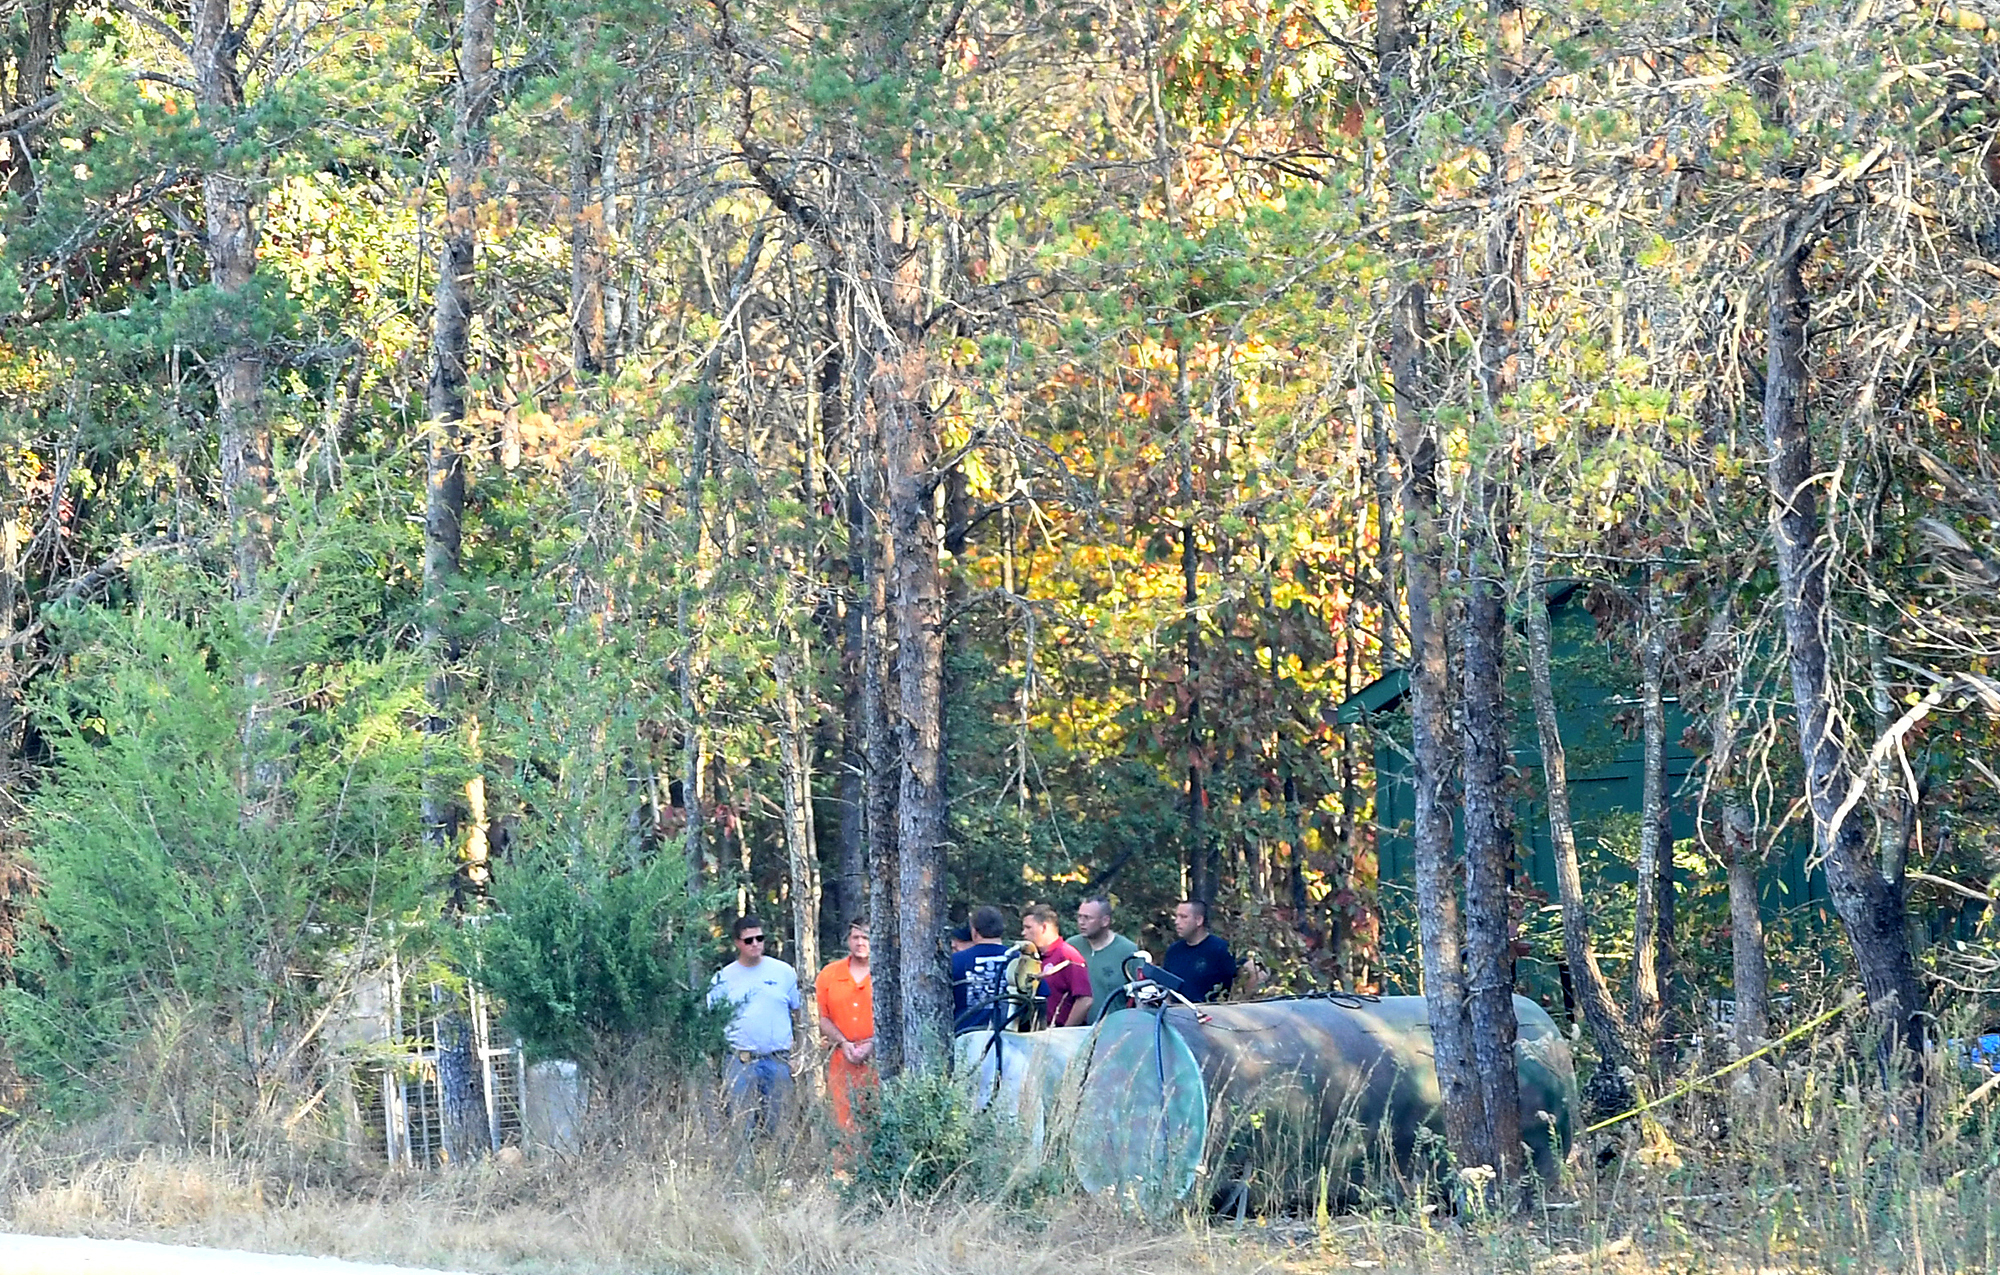 Todd Kohlhepp in handcuffs and an orange jumpsuit walks with deputies Saturday, November 5, 2016, on the property where a missing woman was found chained in a metal container in Woodruff.